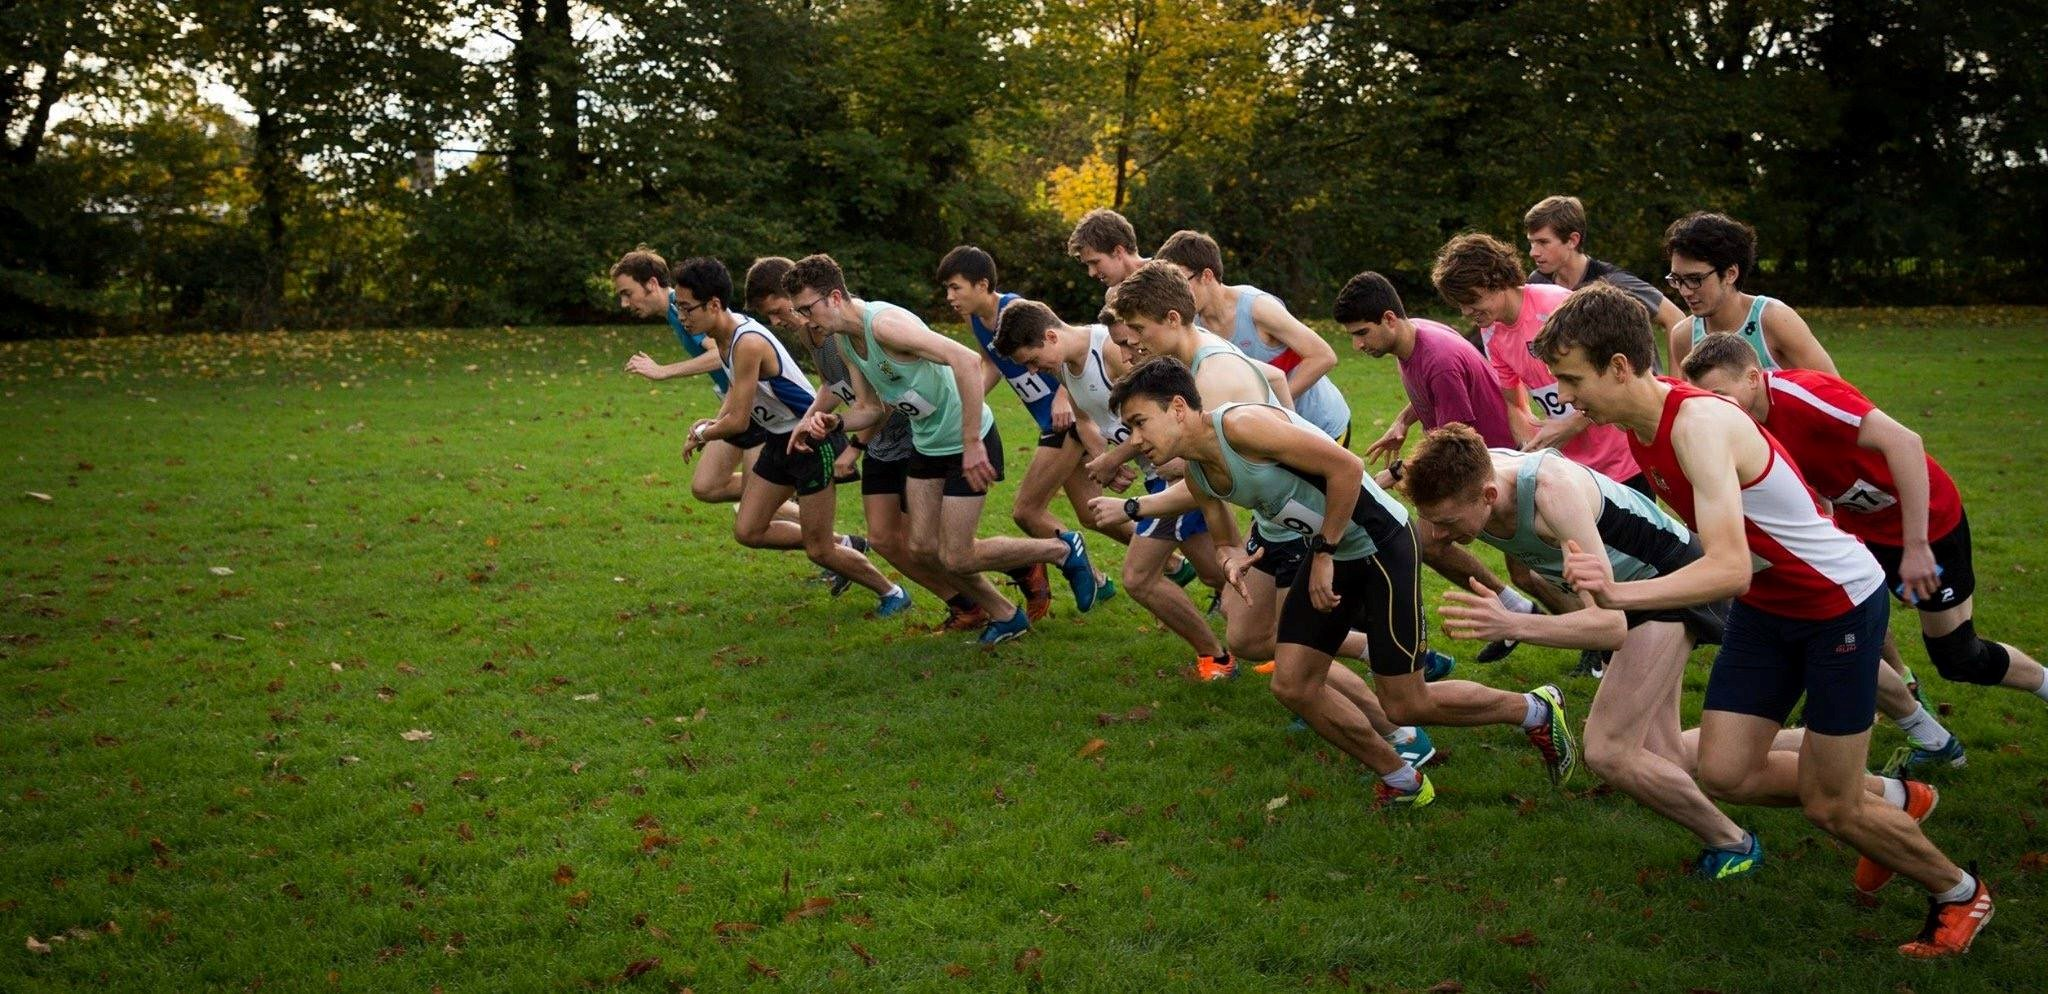 xcountry cup